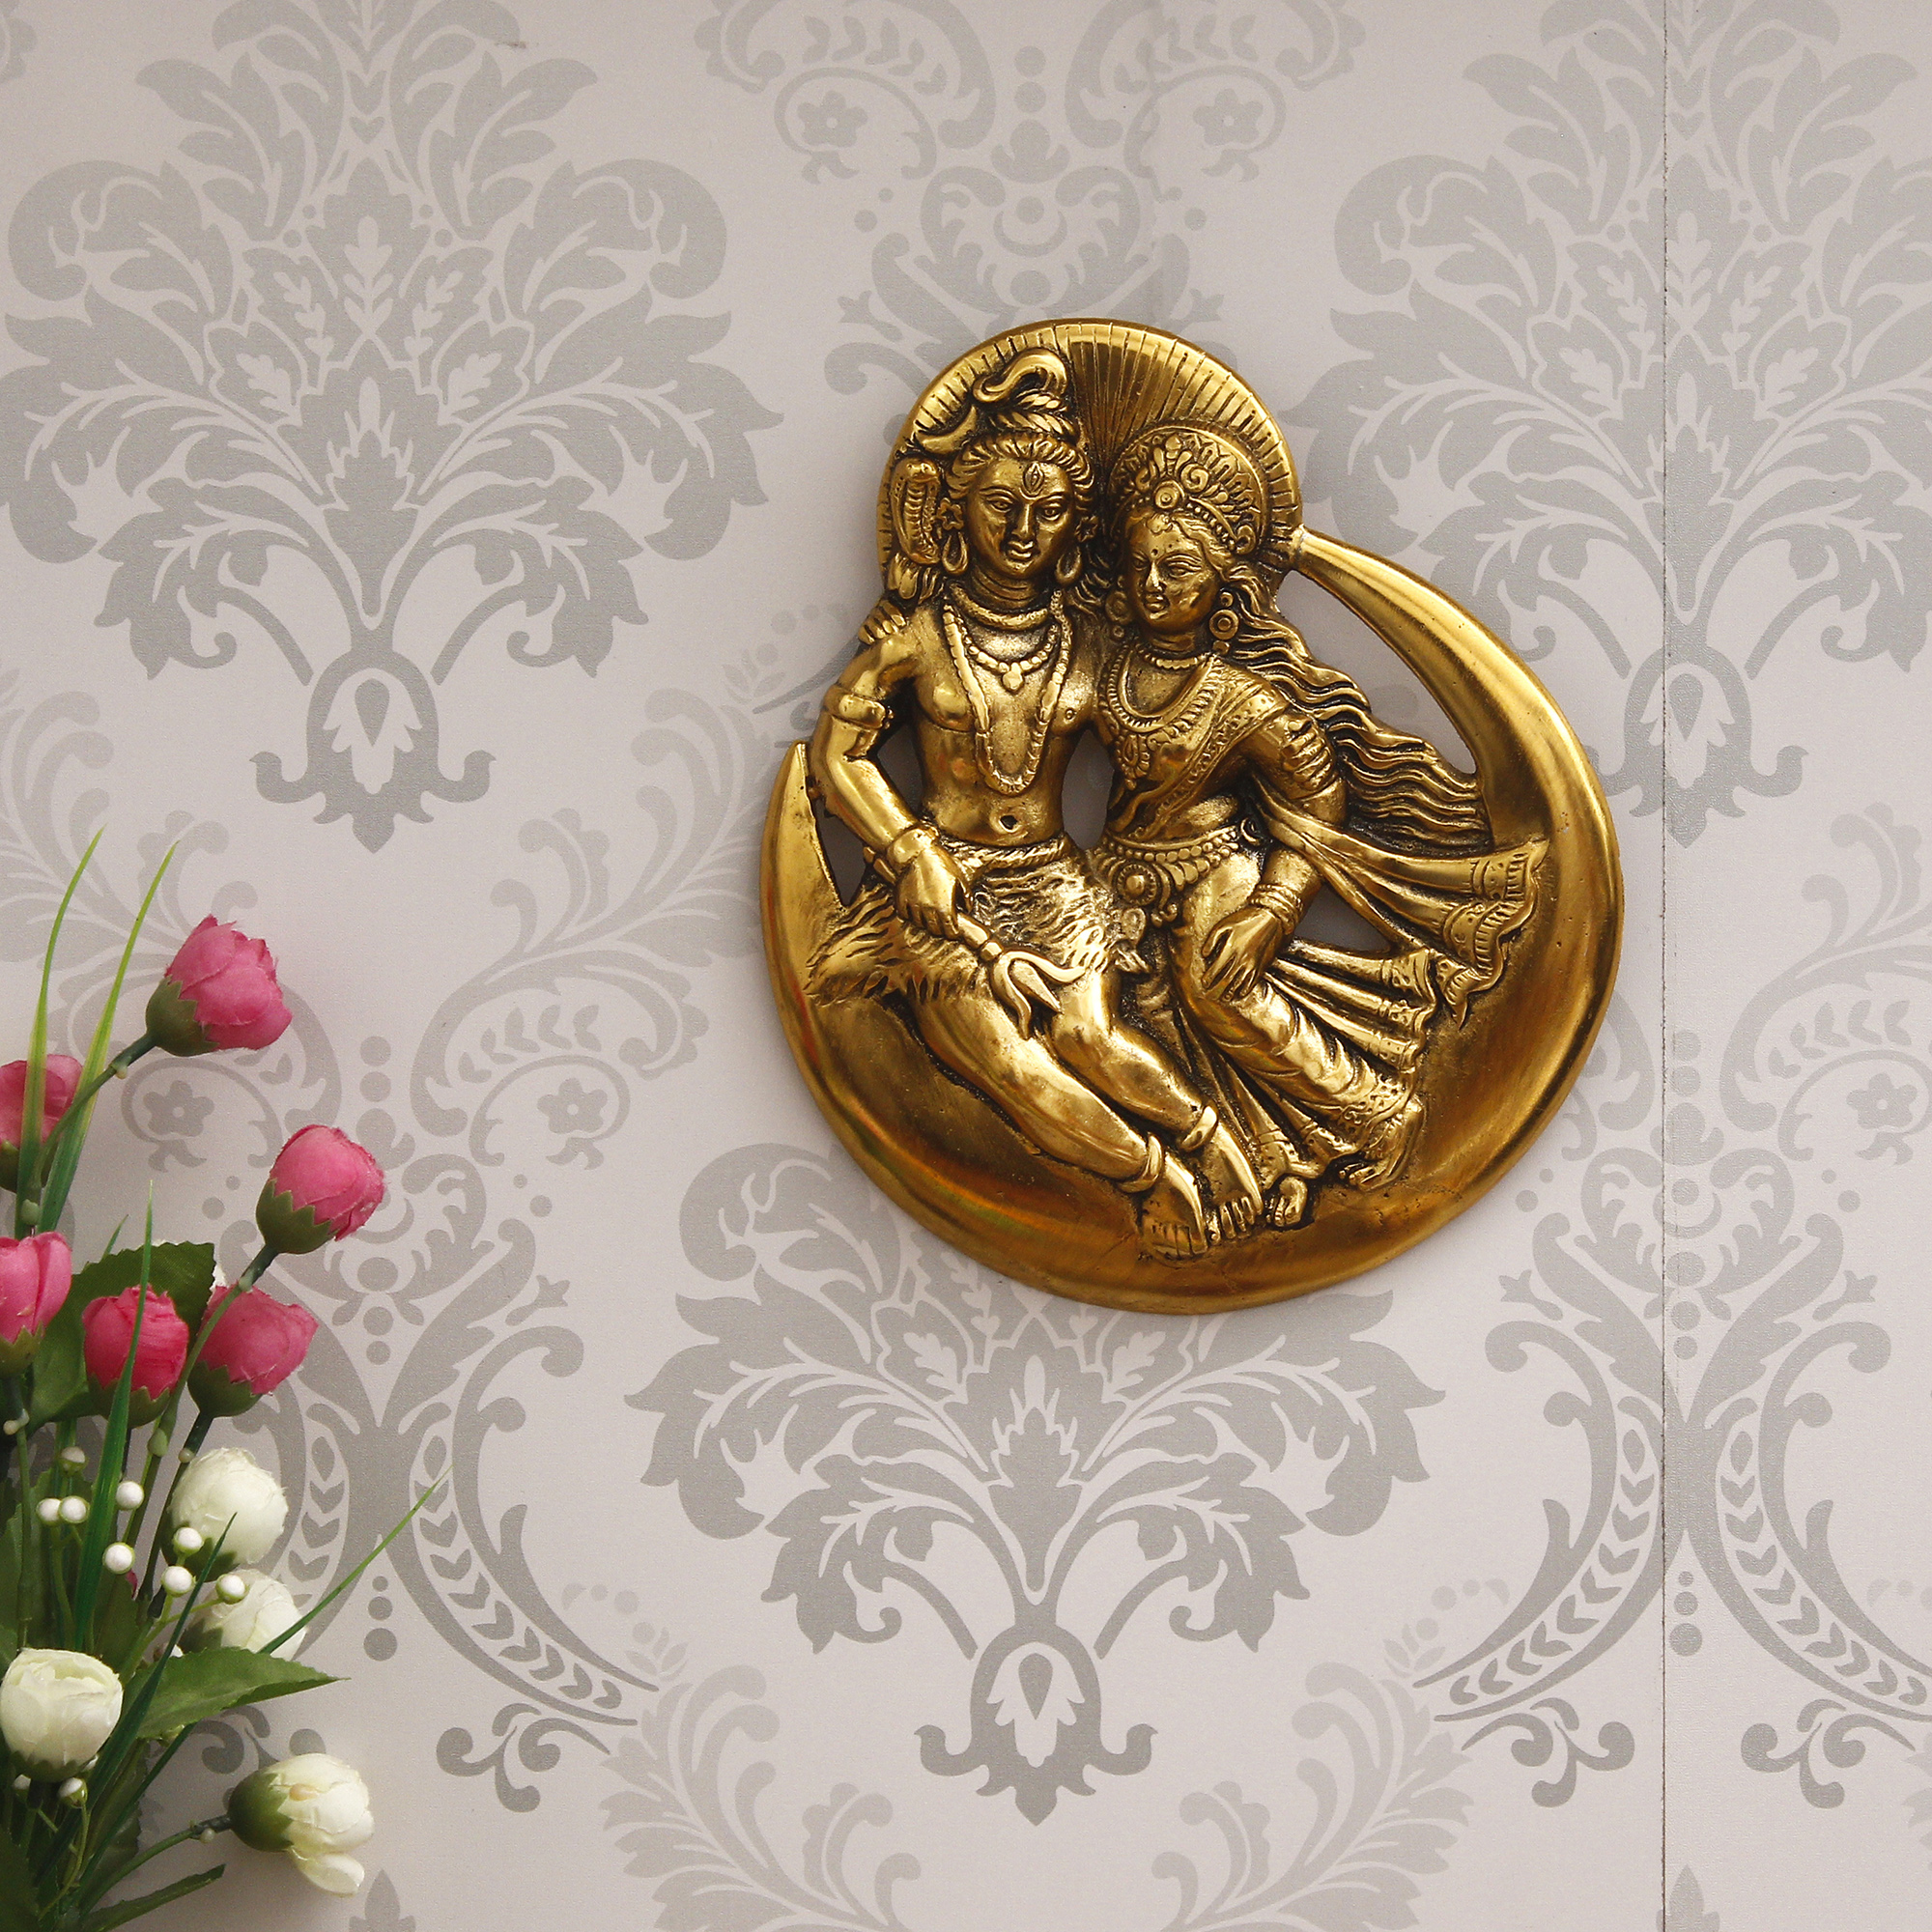 Golden Shiva Parvati Idol Metal Decorative Wall Hanging Showpiece Indian Home Decor